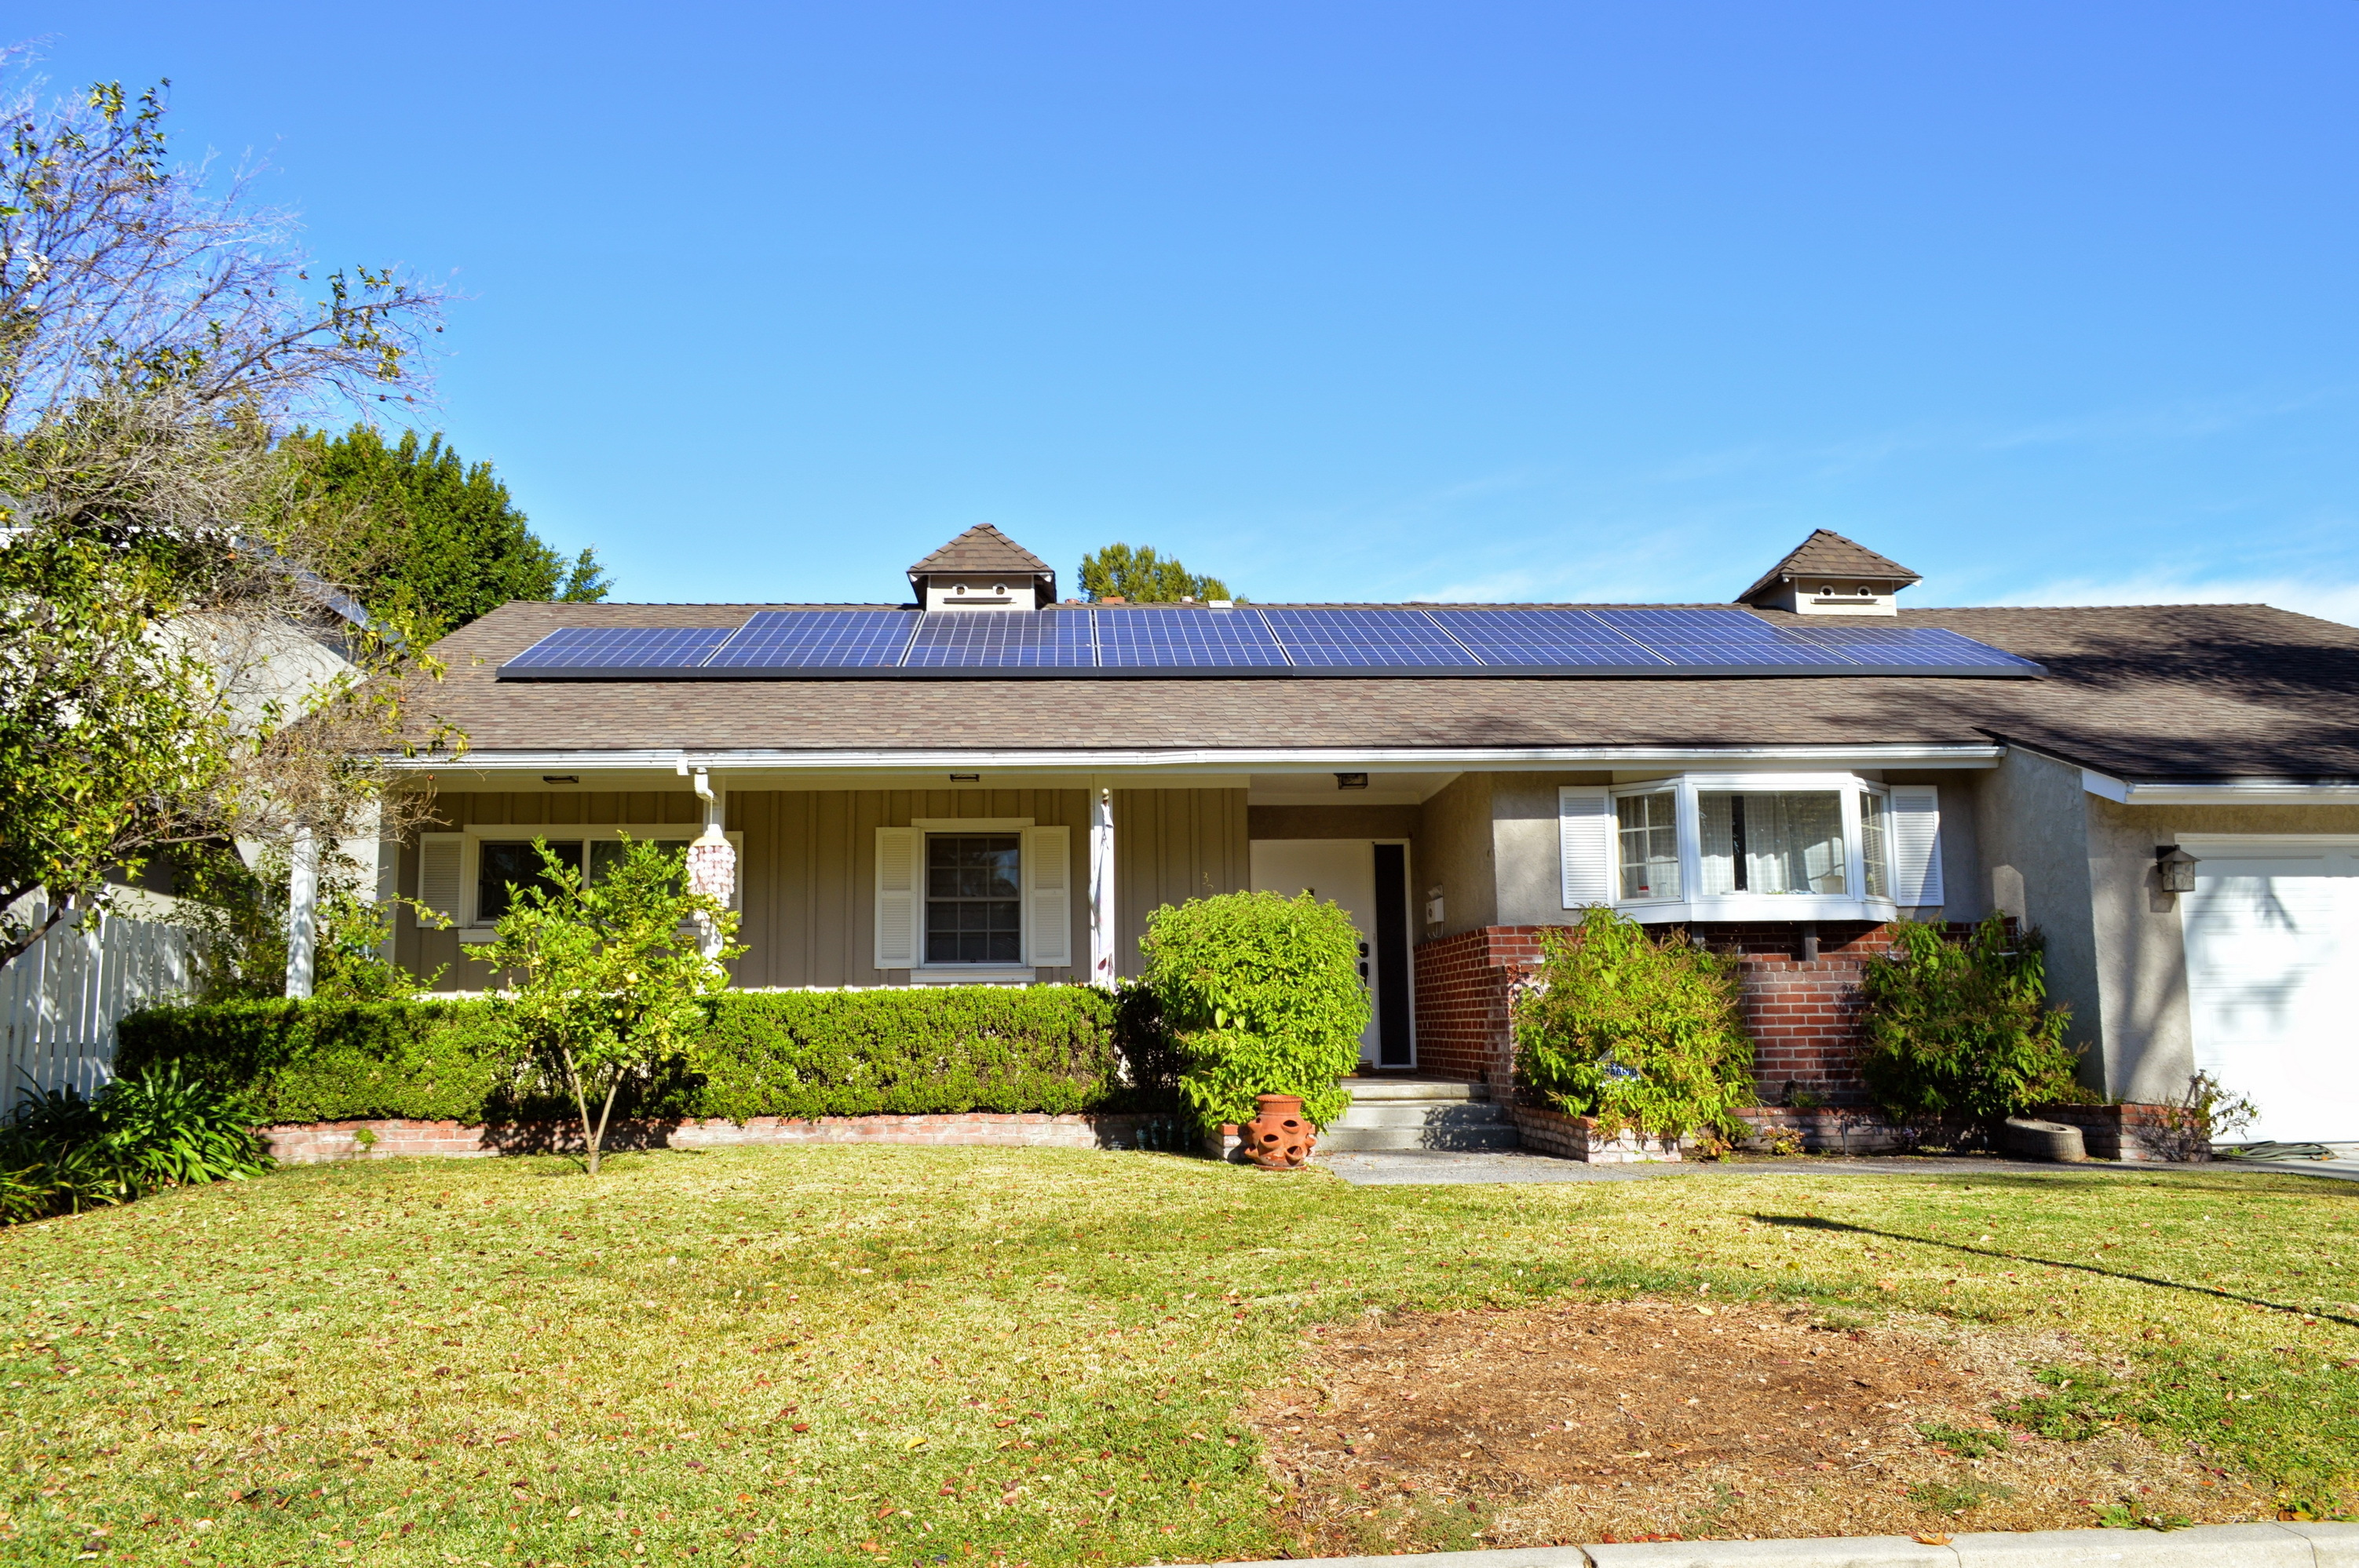 Customers can save money on installing solar by going to the SCE Marketplace.